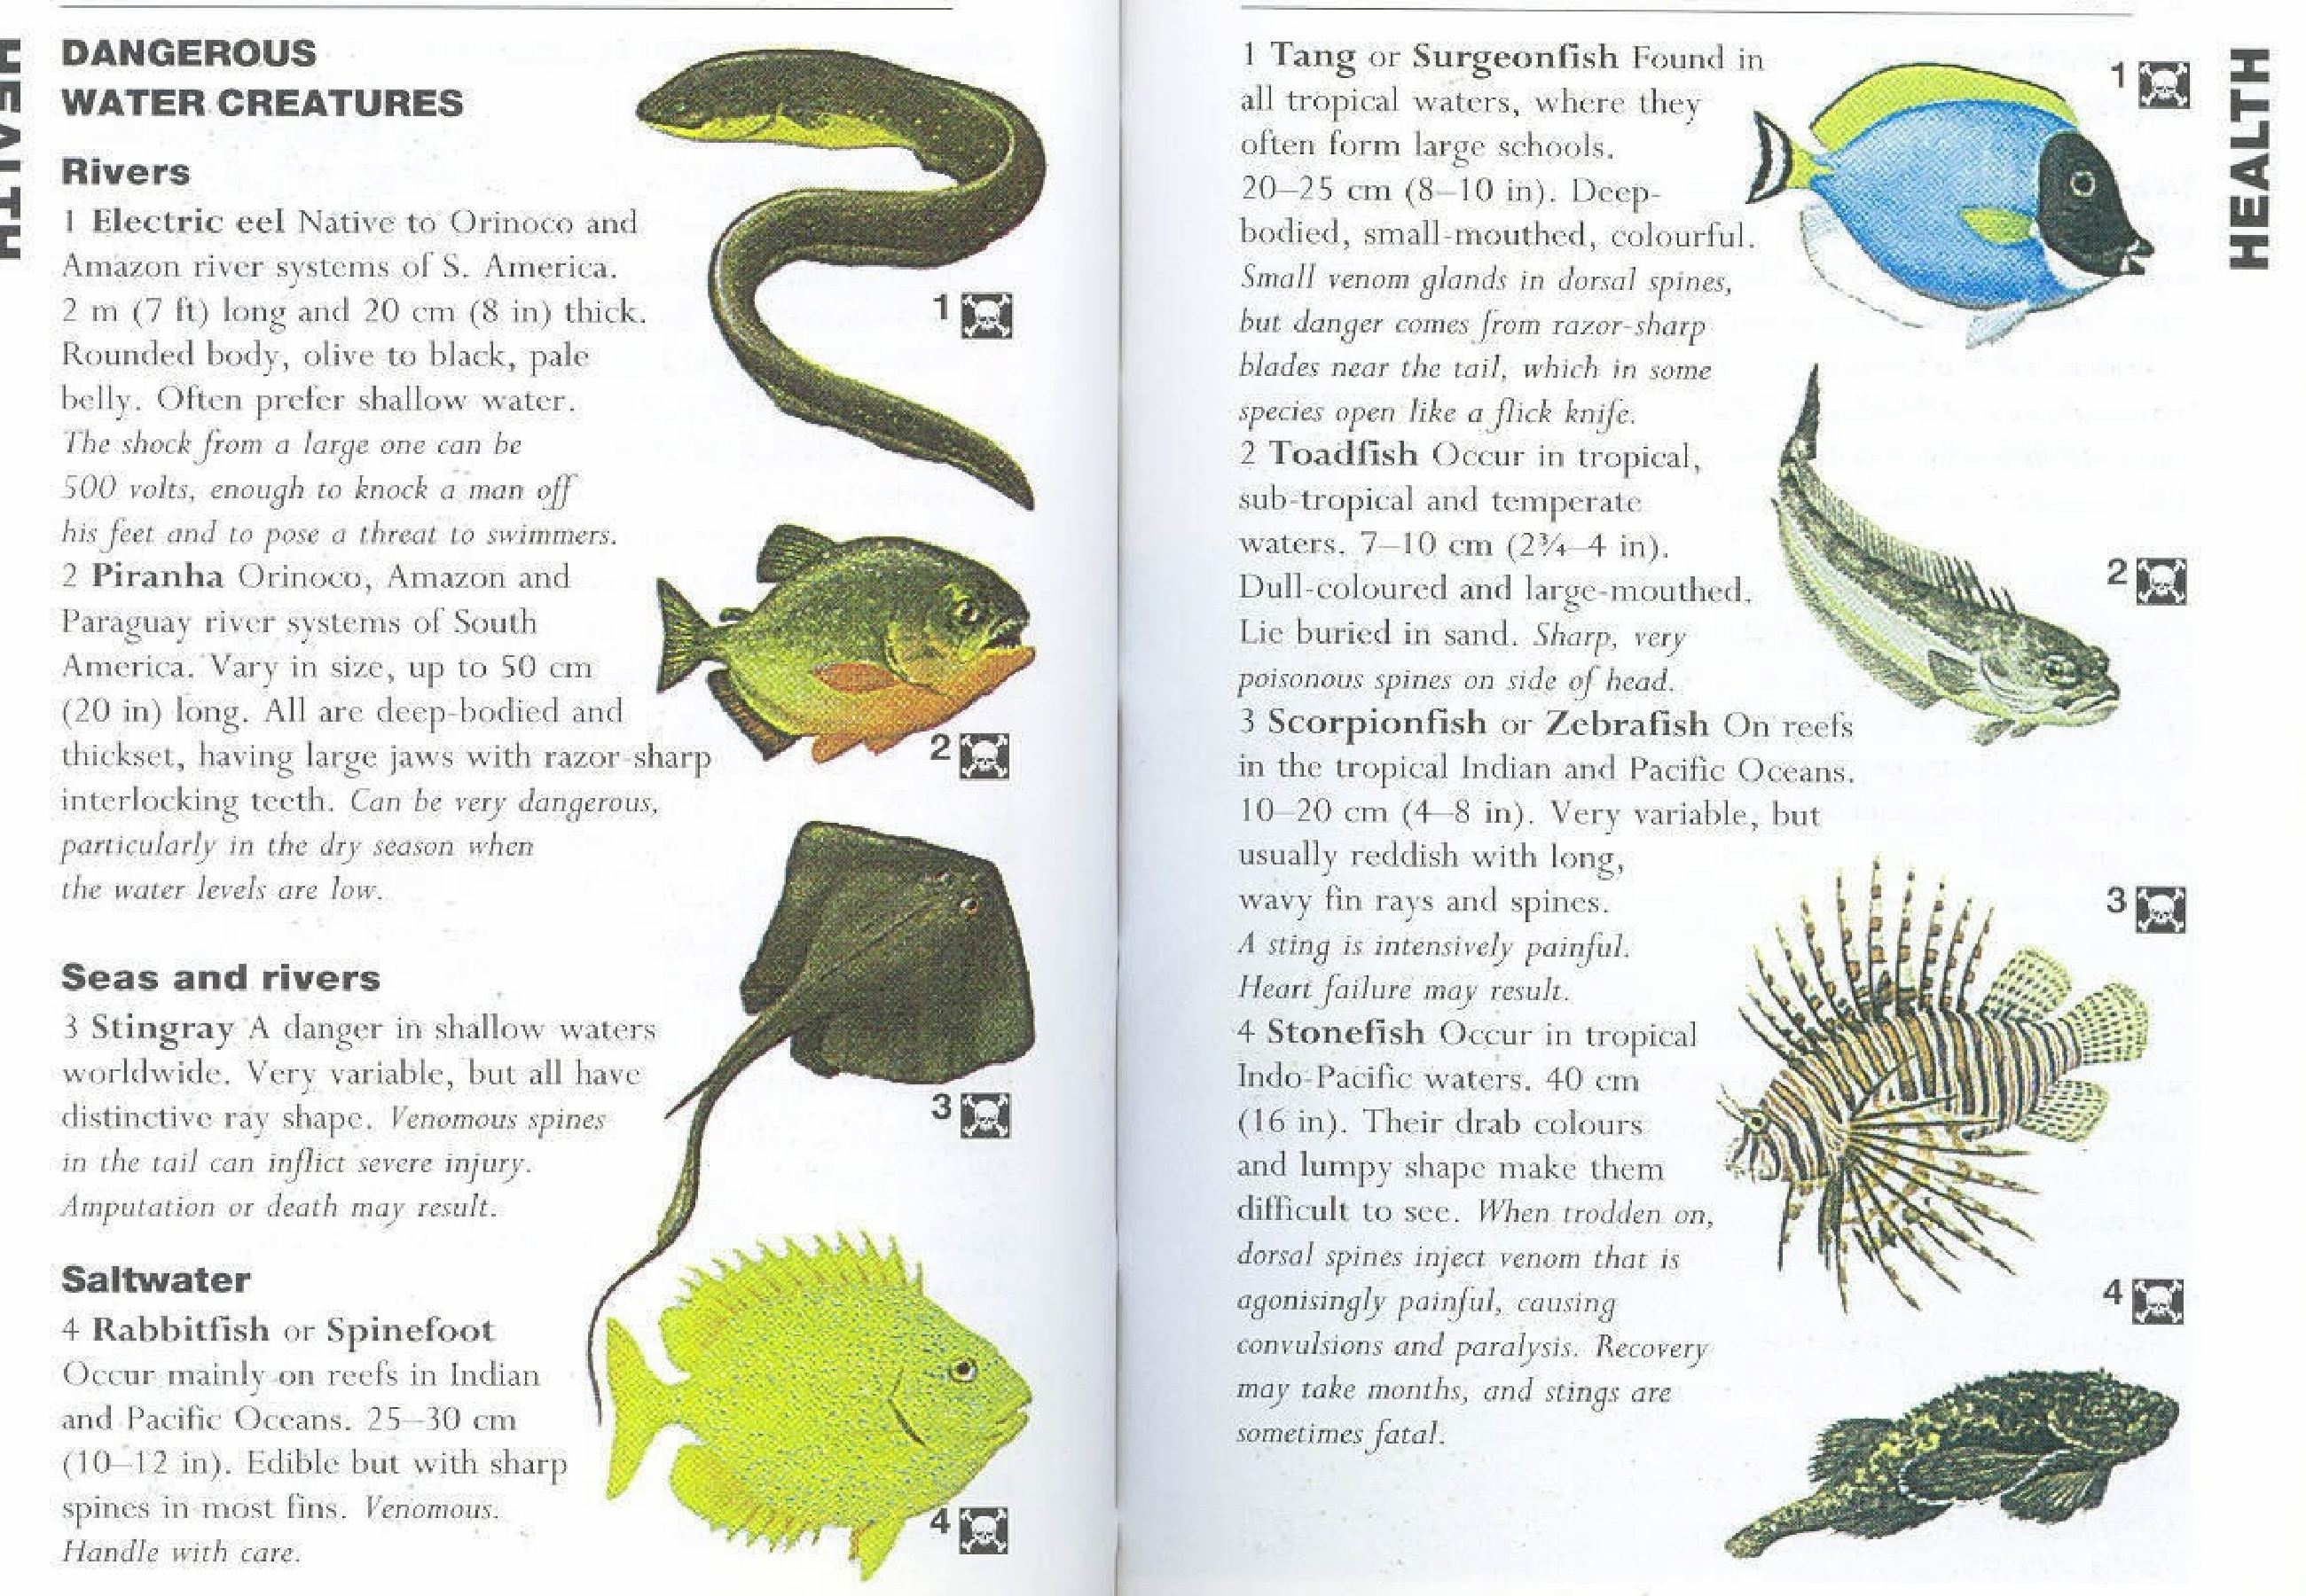 Some of the dangerous water creatures are Electric eel, Piranha, Stingray, Rabbitfish, Tang toadfish, Scorpionfish, stonefish. Originally posted: November 25, 2012